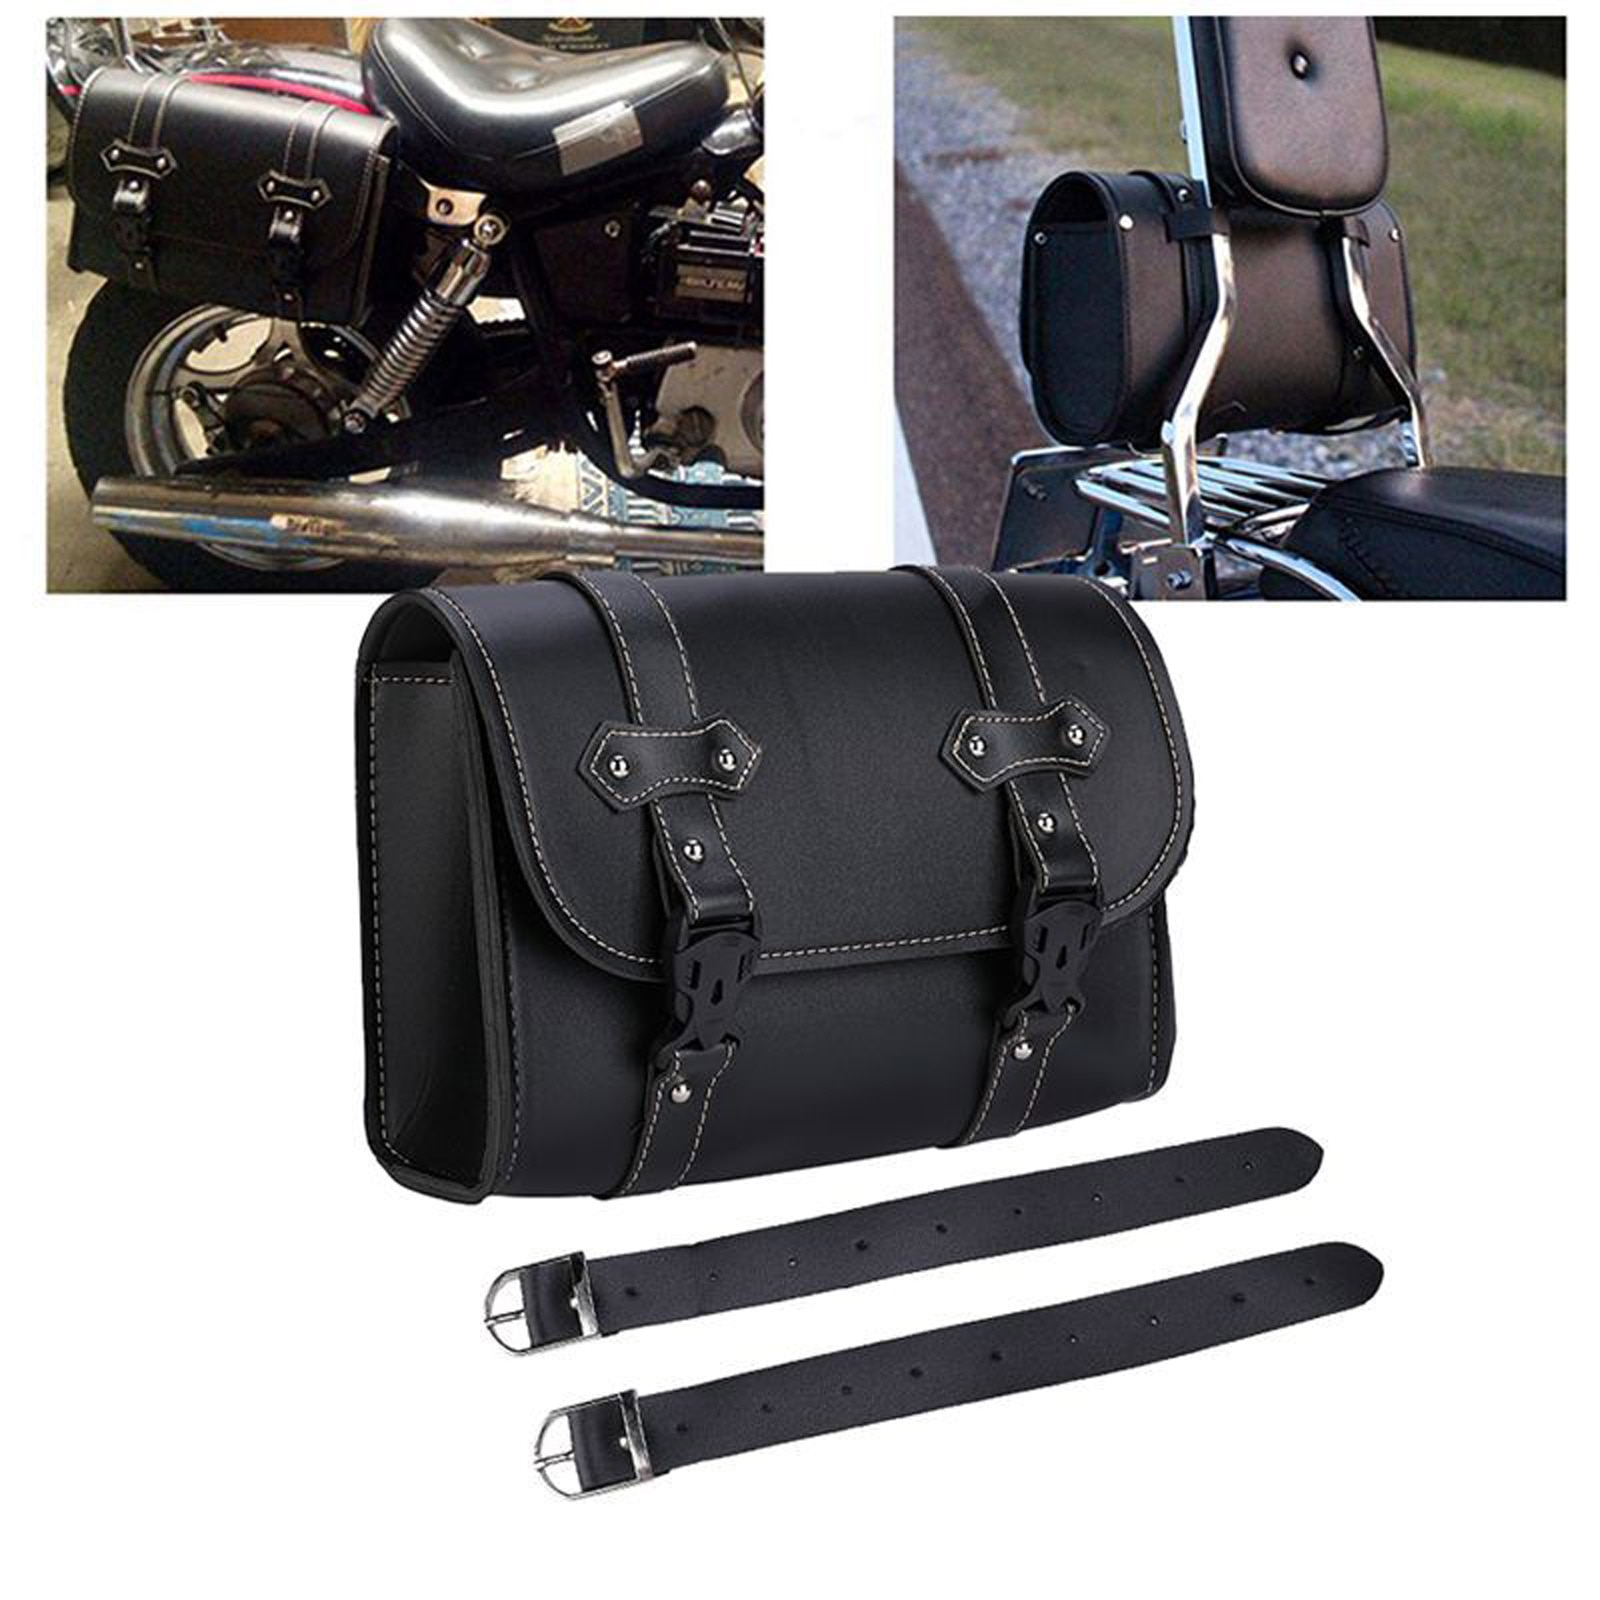 pu leather saddlebag motorcycle saddle bags l Black Universal Motorcycle Saddlebag PU Leather Waterproof Luggage Saddle Bag Storage Tool Pouch For Sportster XL883 XL1200